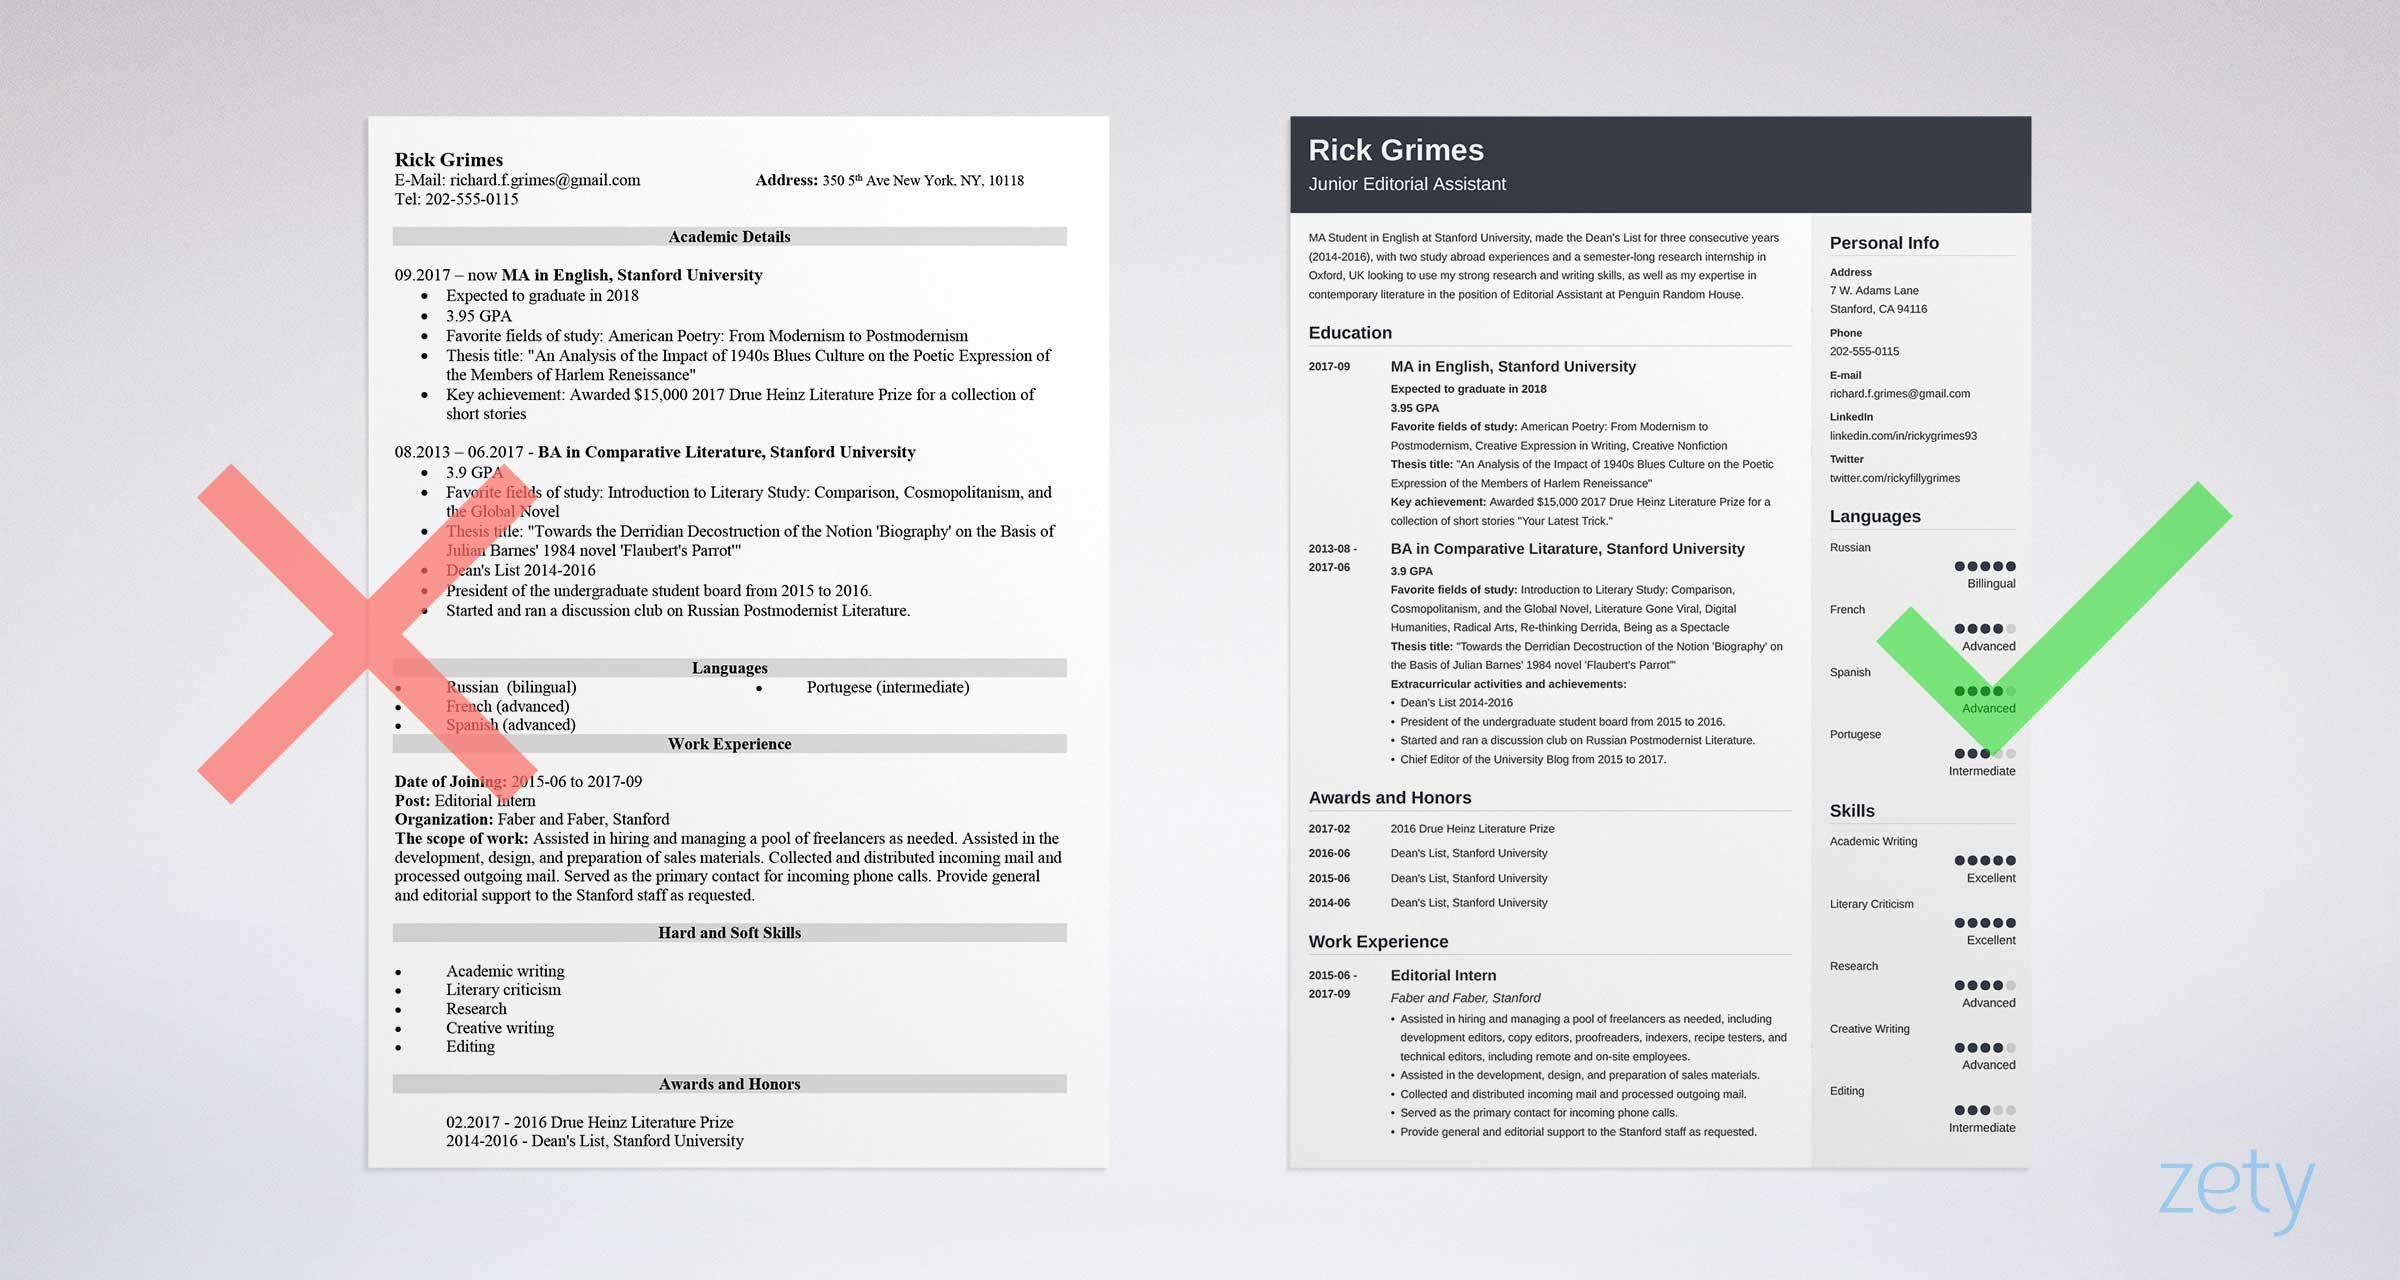 Data Entry Job Description for Resume - Entry Level Resume Sample and Plete Guide [ 20 Examples]